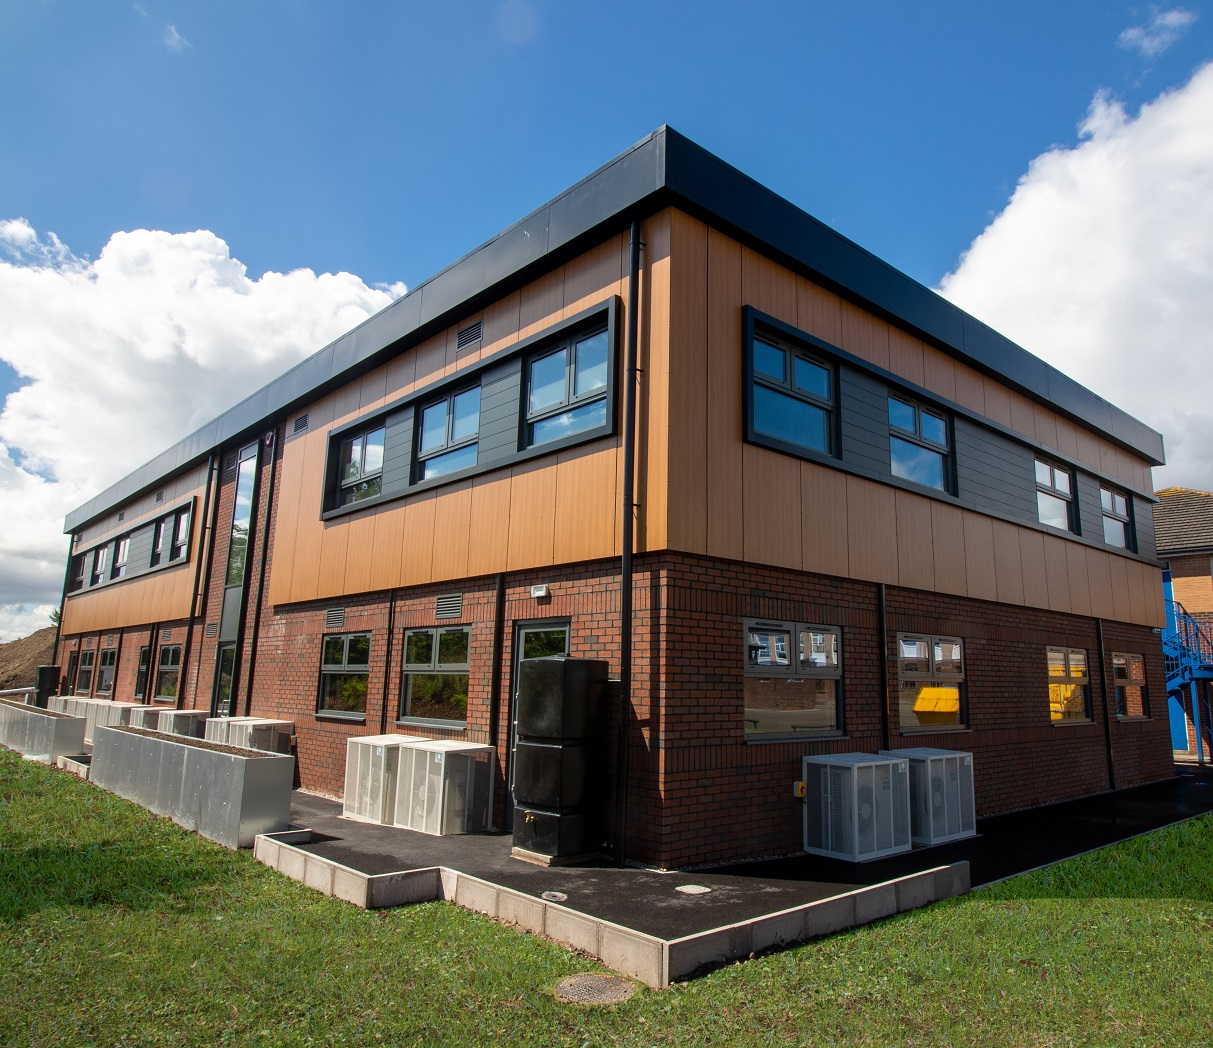 Collinson completes £2.1m teaching centre for Morecambe Bay Academy